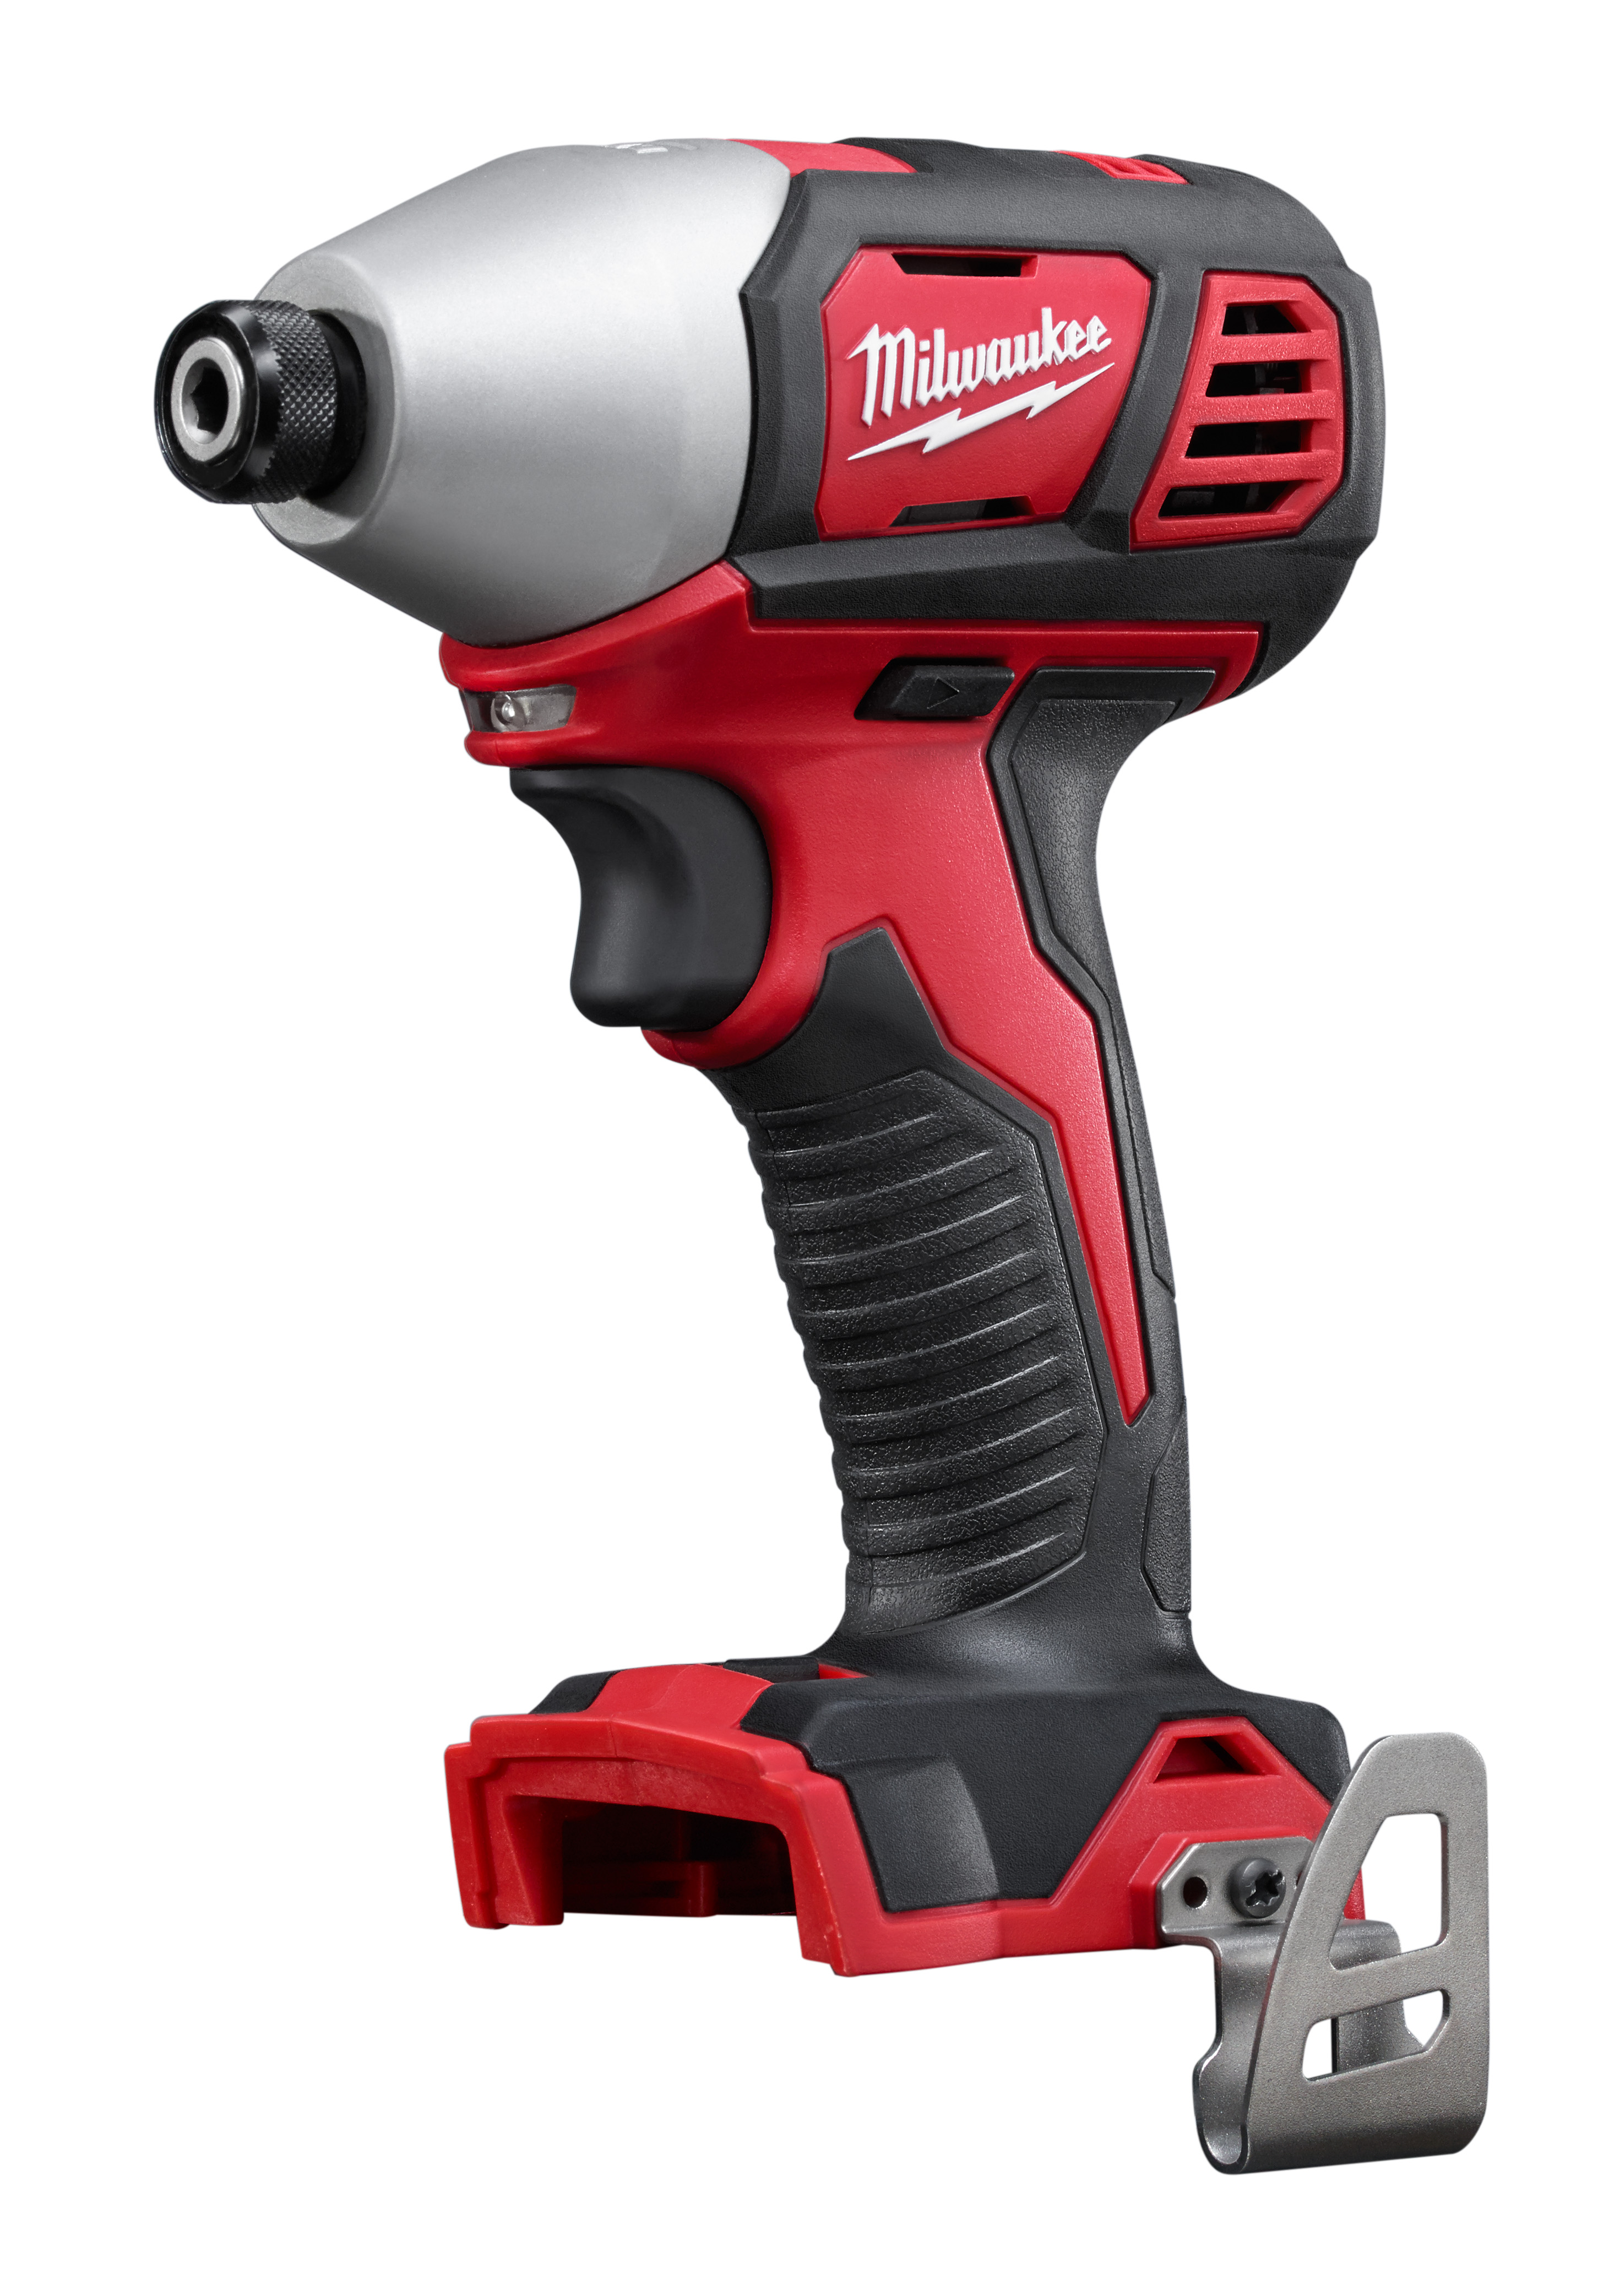 Milwaukee 2657-20 M18™ 2 Speed 1/4 Hex Impact Driver